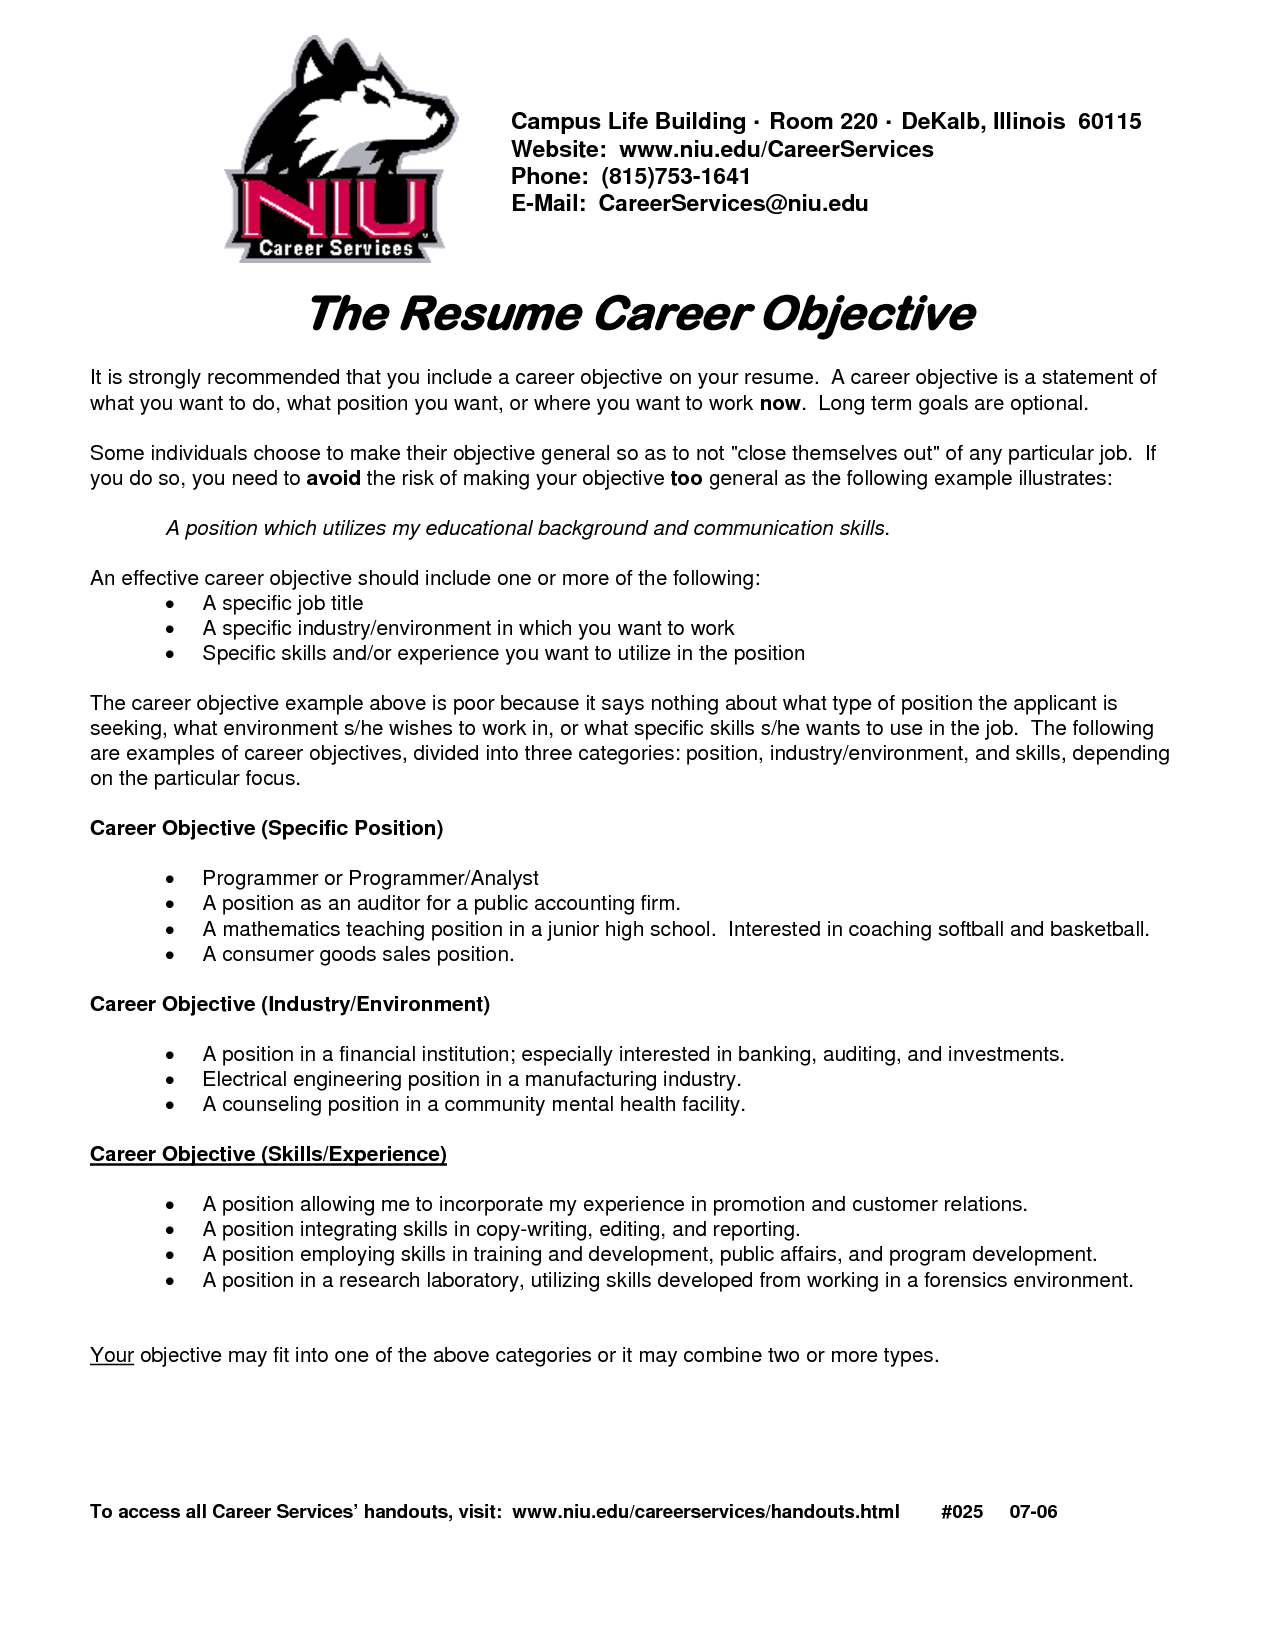 Resume job objective examples